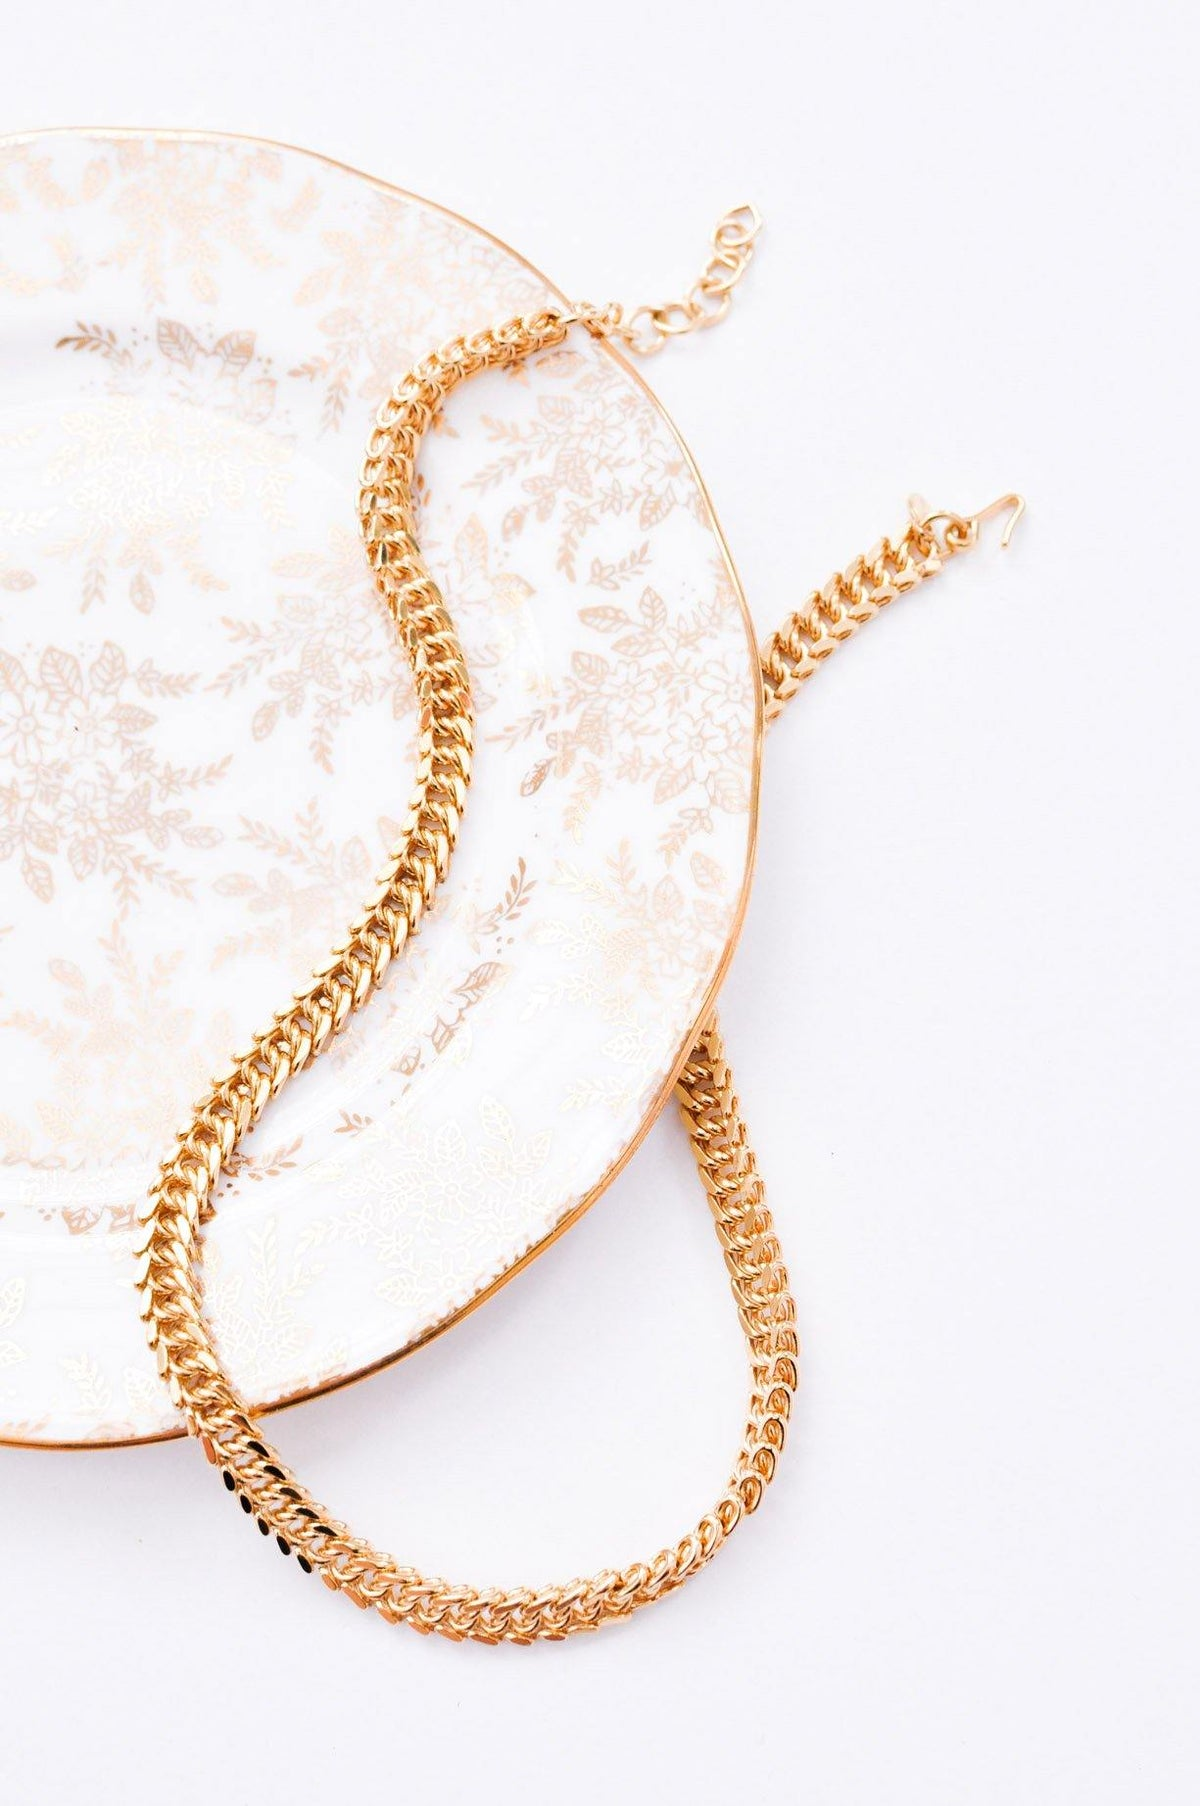 Gold Curb Chain Choker Necklace - Sweet & Spark